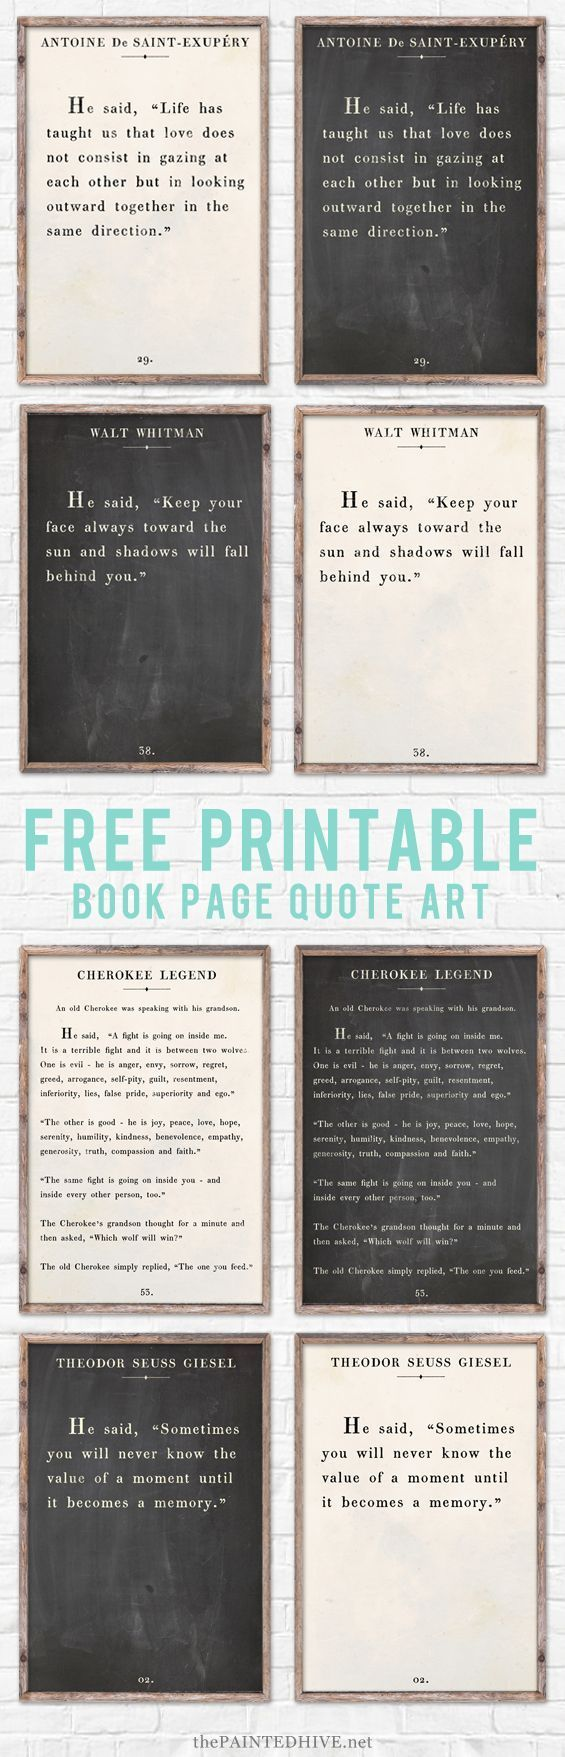 Amazing set of HUGE free printable farmhouse style signs!